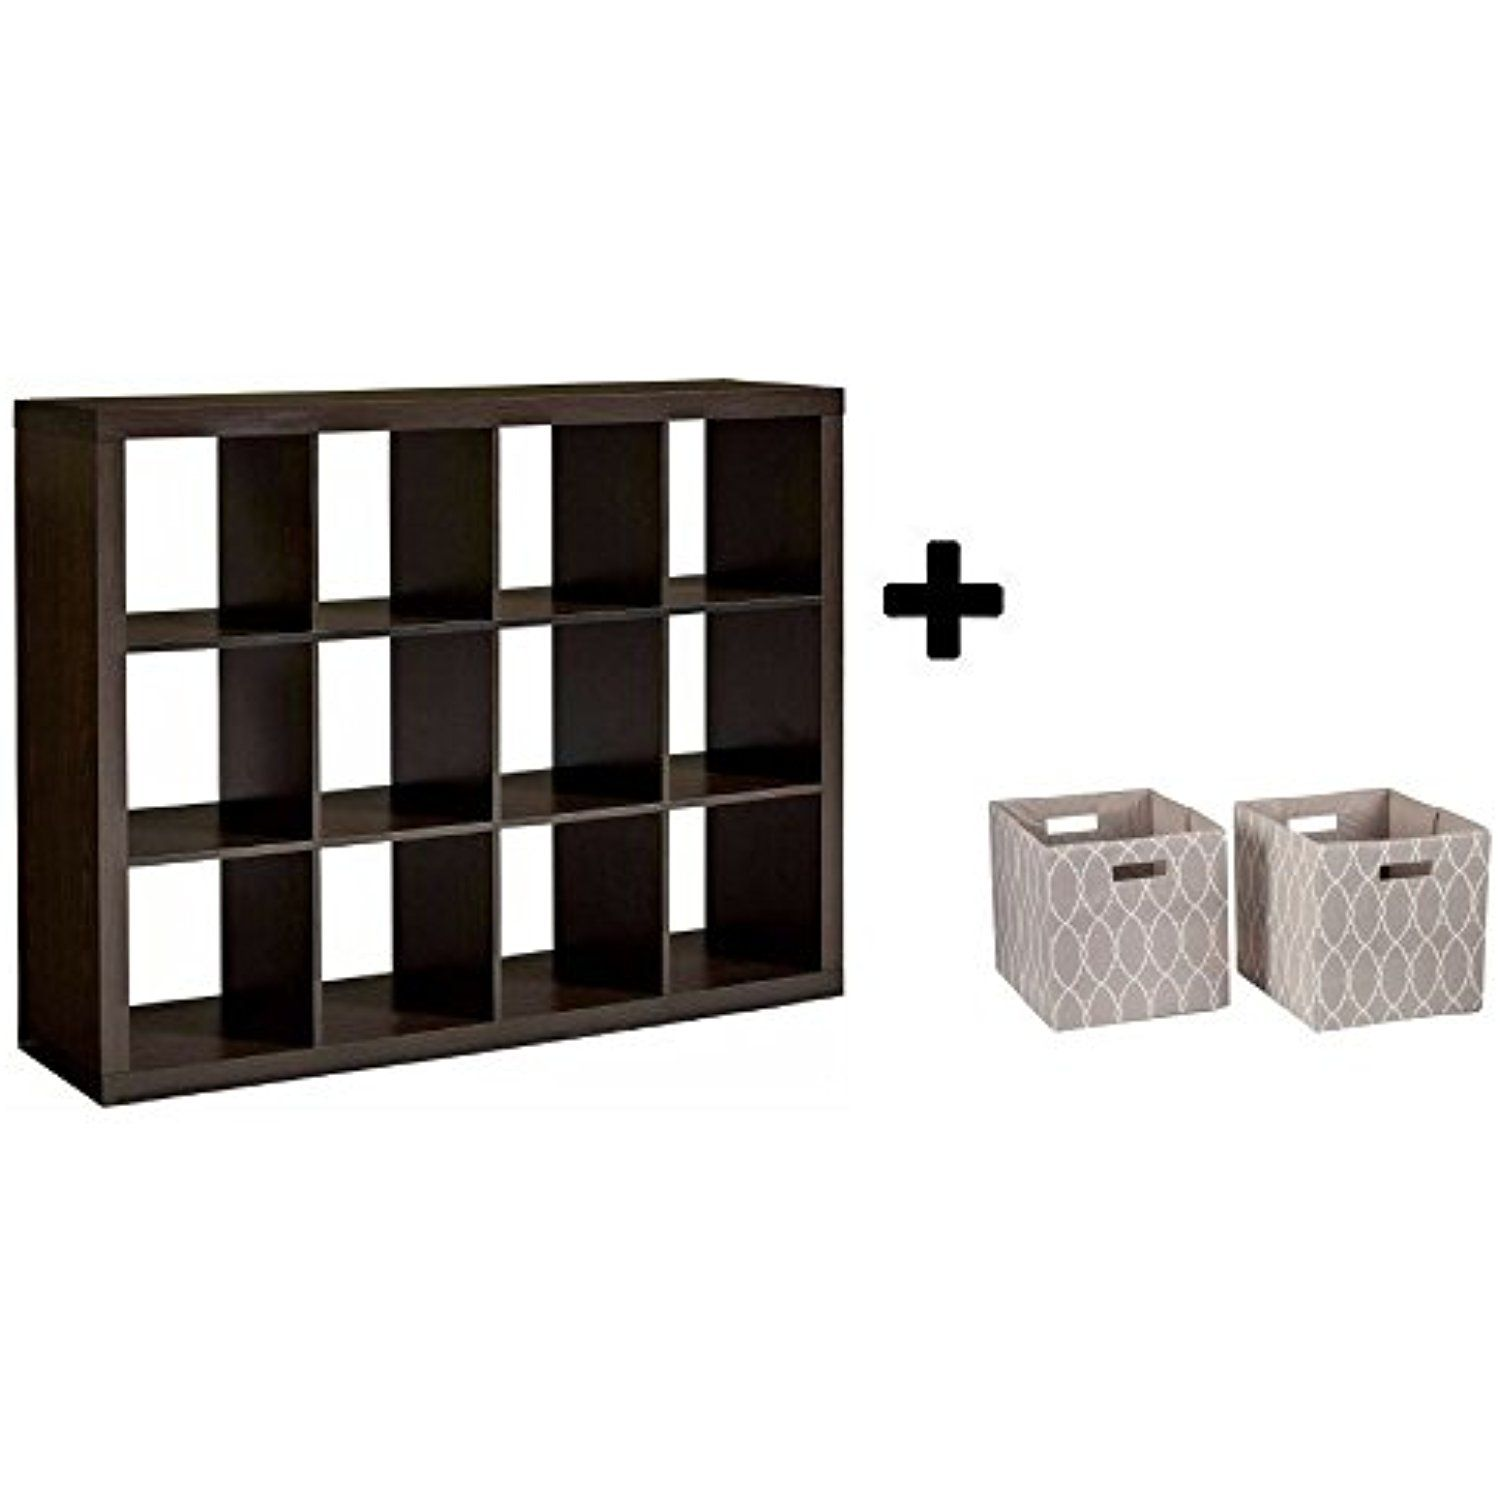 Better Homes And Gardens 12 Cube Organizer, Espresso With Open